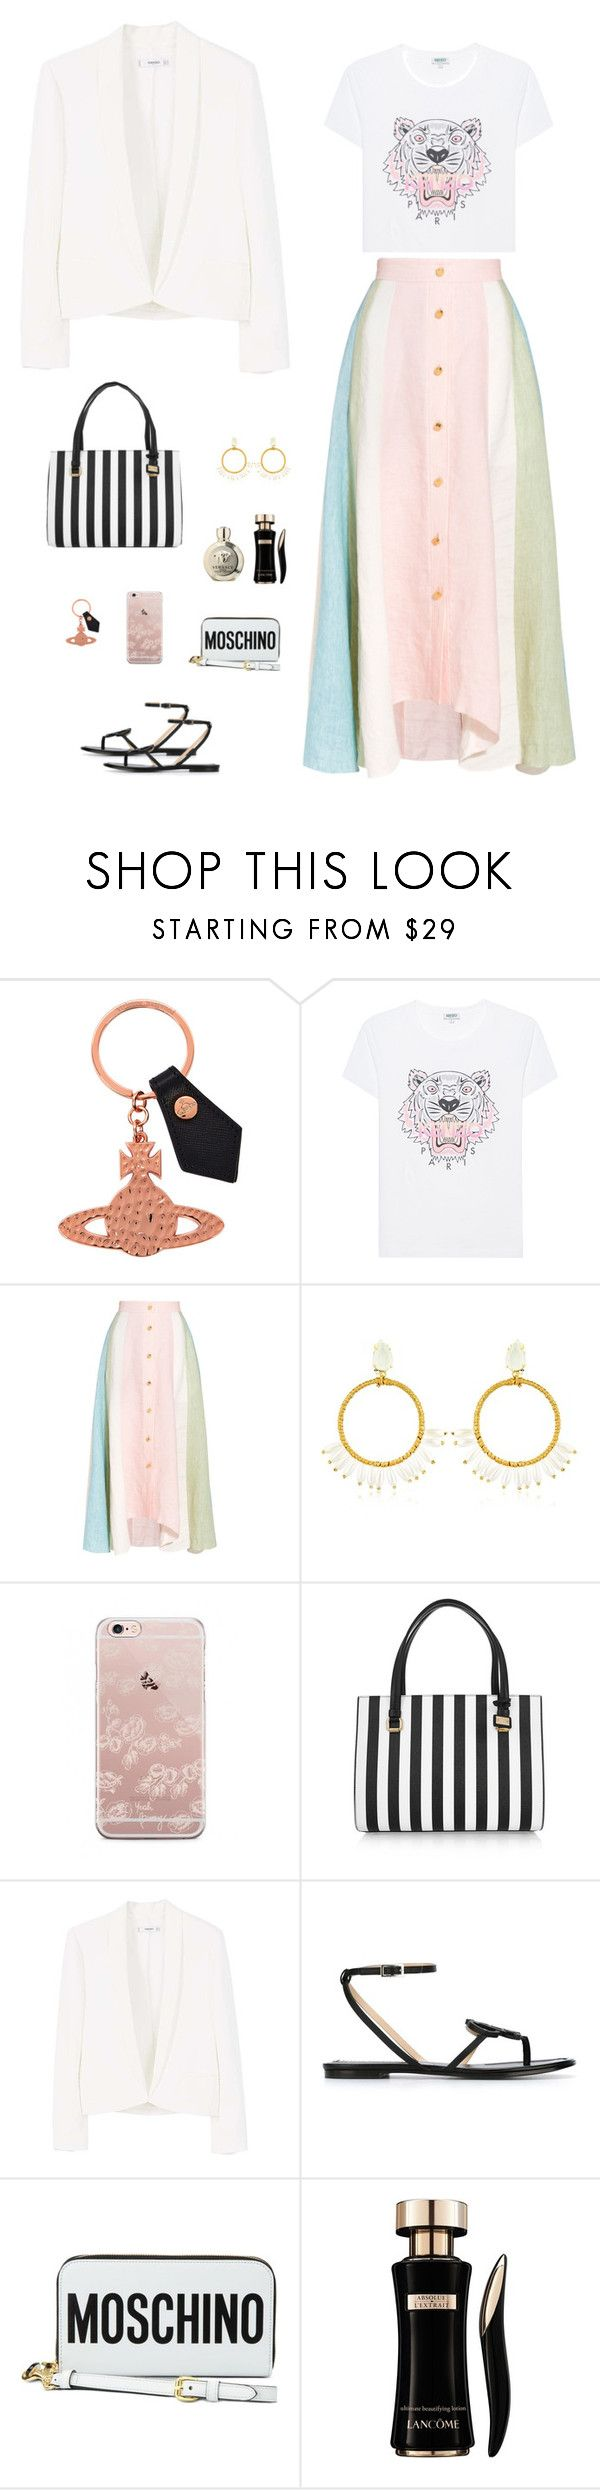 """""""Peter Pilotto Long Linen Skirt"""" by sol4ange ❤ liked on Polyvore featuring Vivienne Westwood, Kenzo, Peter Pilotto, VANINA, Dolce&Gabbana, MANGO, Emilio Pucci, Moschino, Lancôme and Versace"""